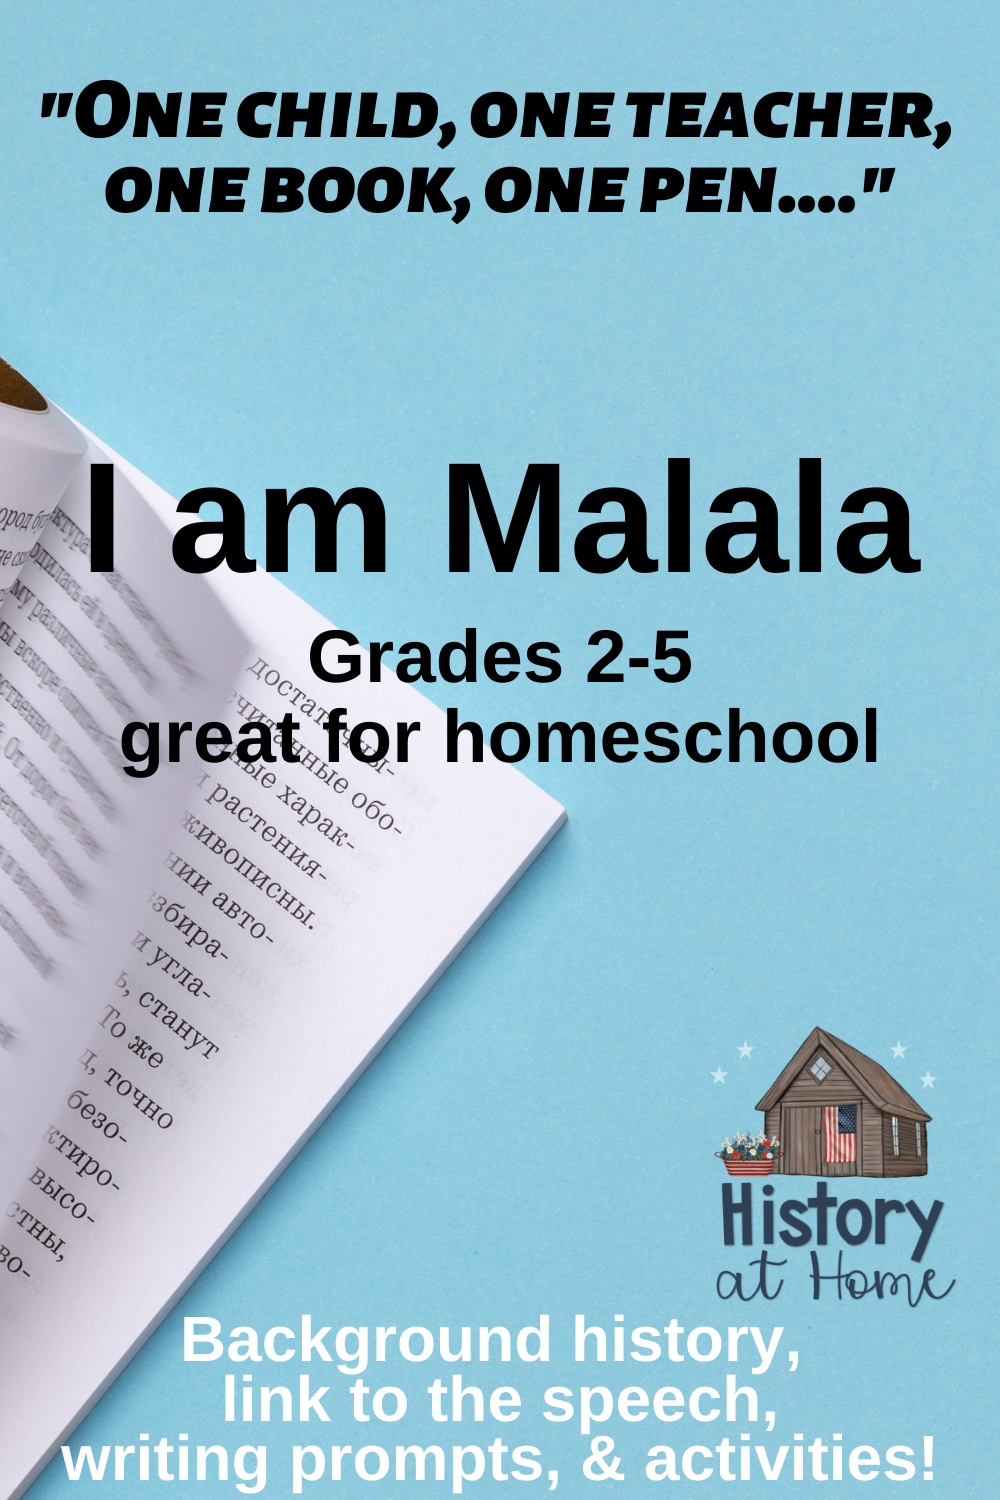 Photo of I Am Malala Speech Guide and Analysis for Grades 2-5 and Homeschool